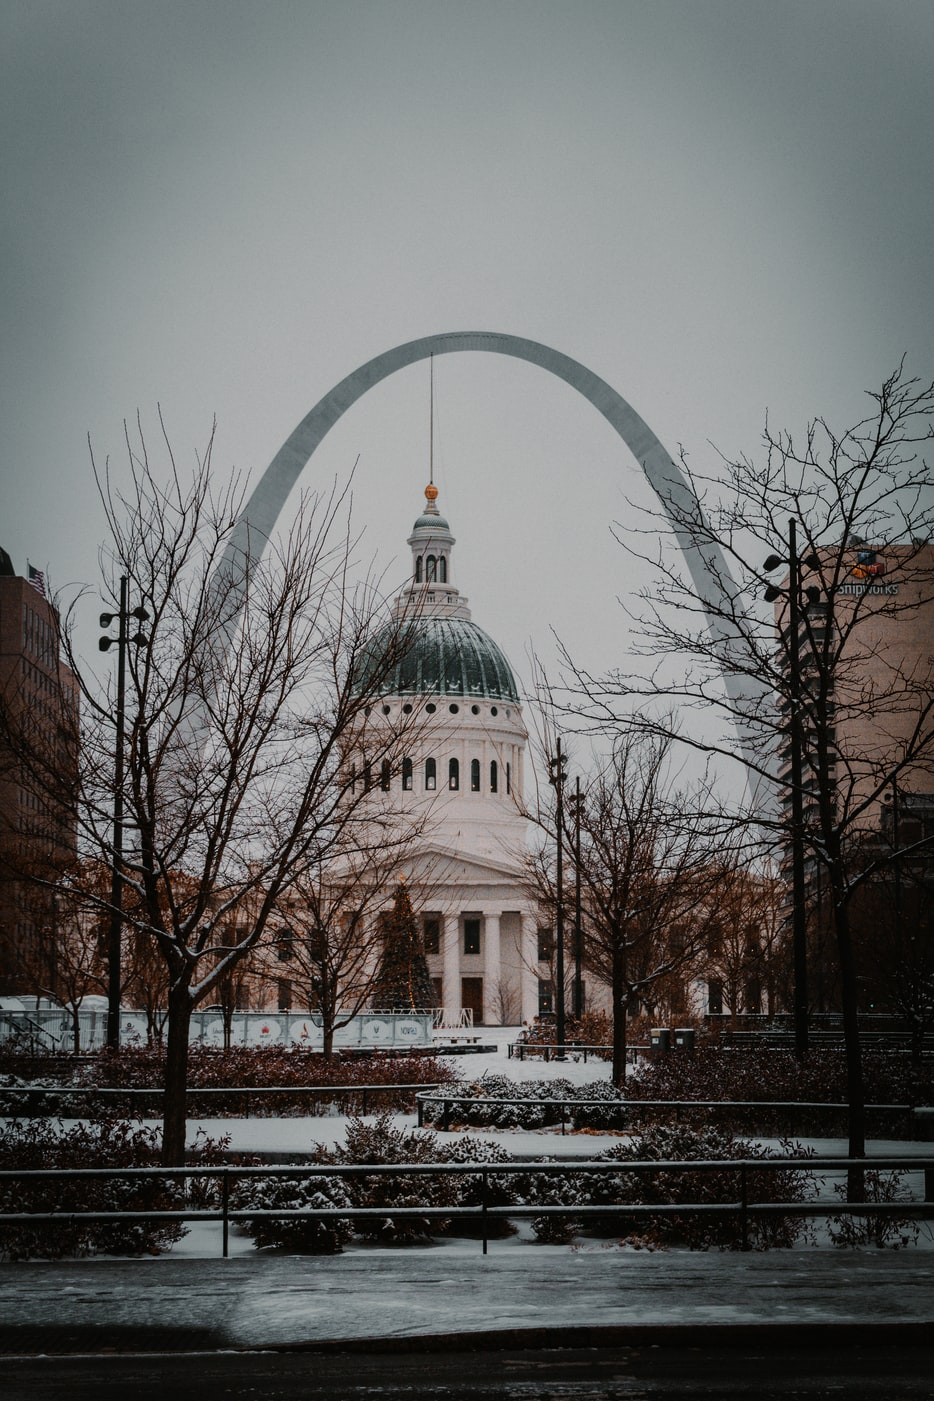 the st louis arch and capitol building